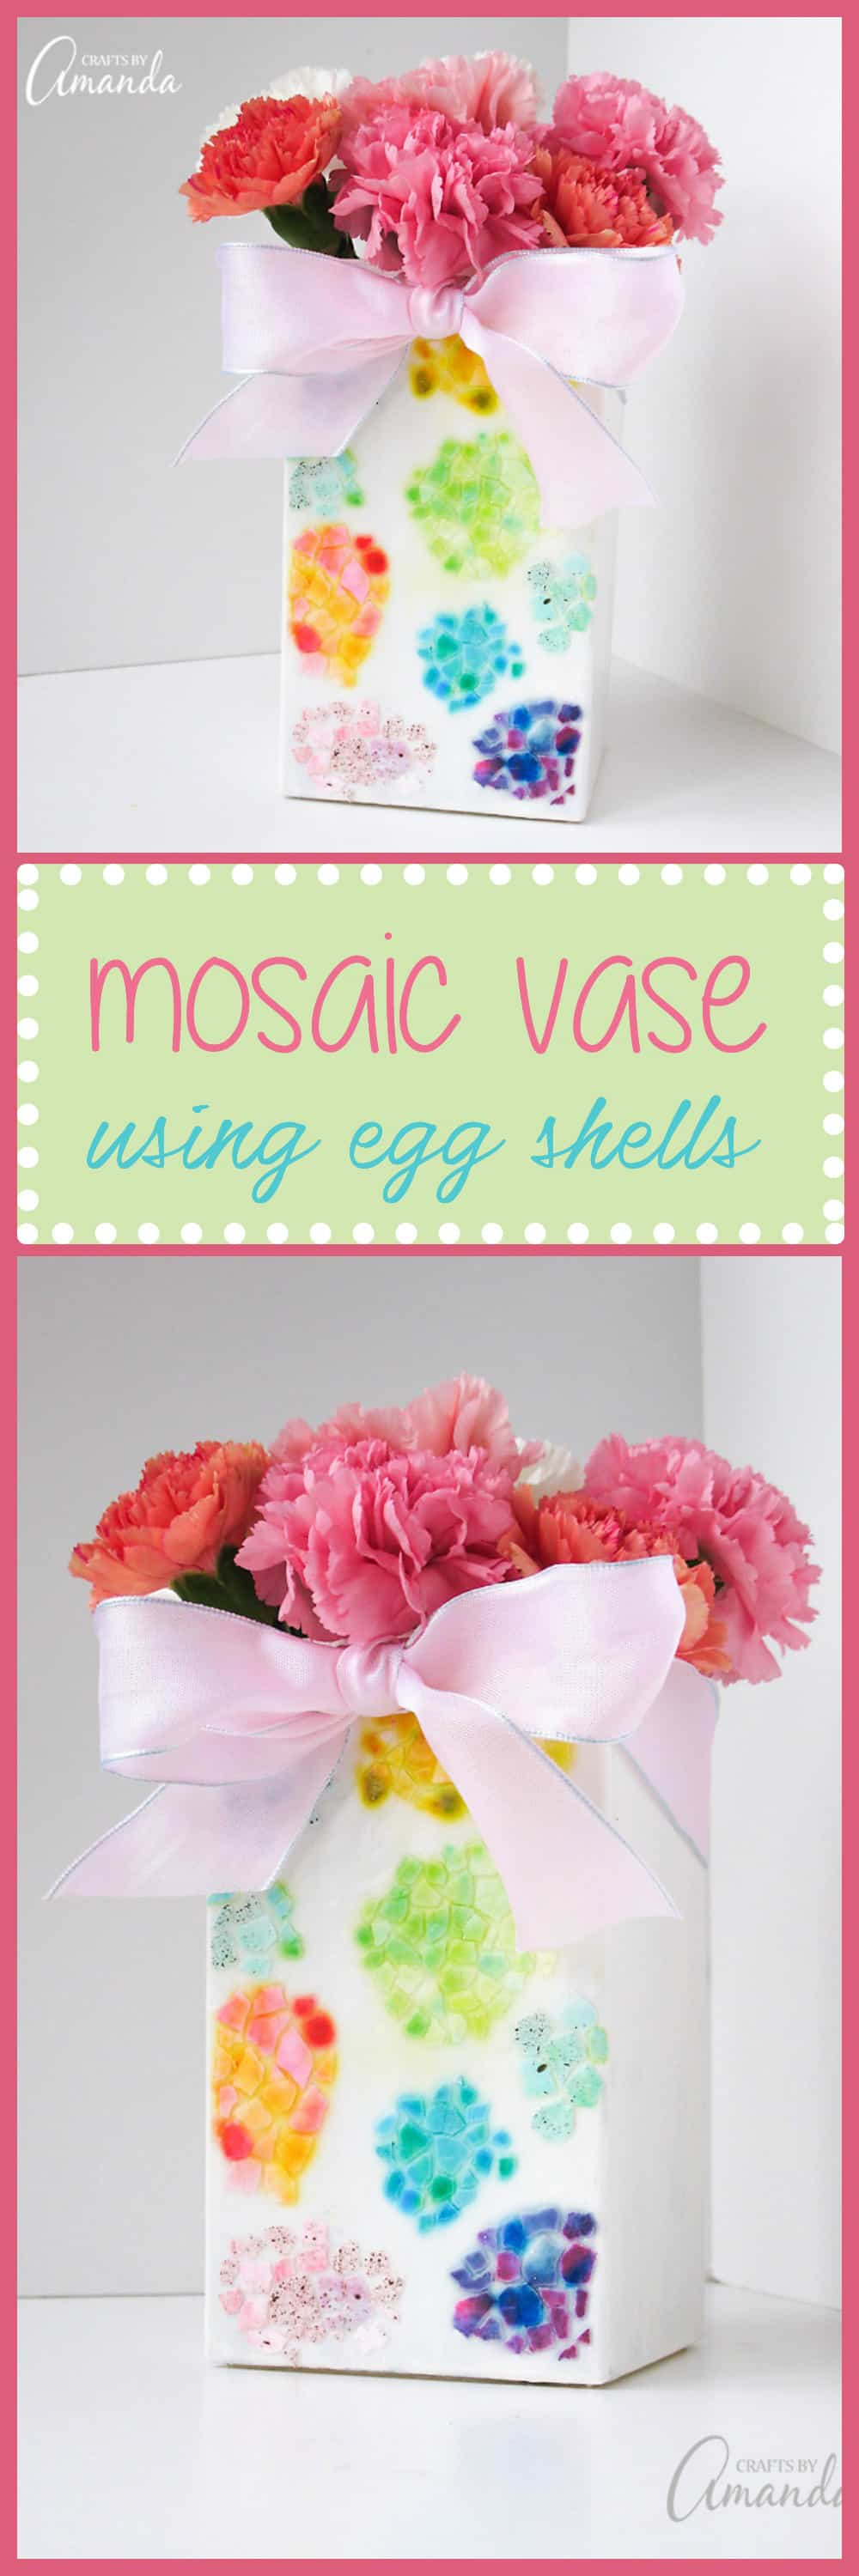 This egg shell mosaic vase is a pretty way to display those colorful Easter egg shells you created! Another fun Easter adult craft!